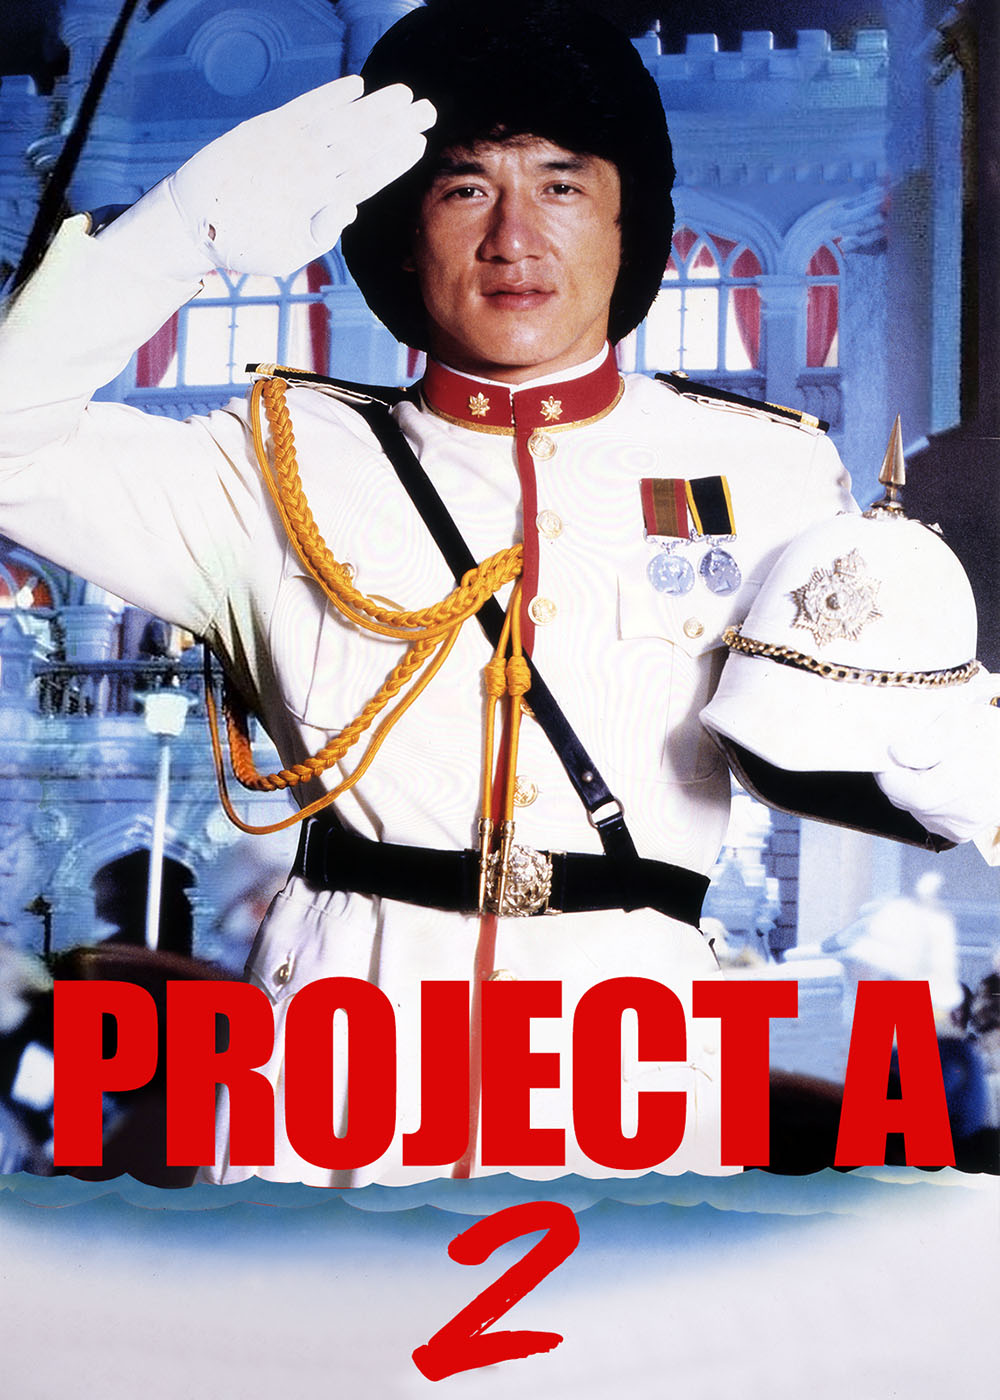 projecta2_poster.jpg